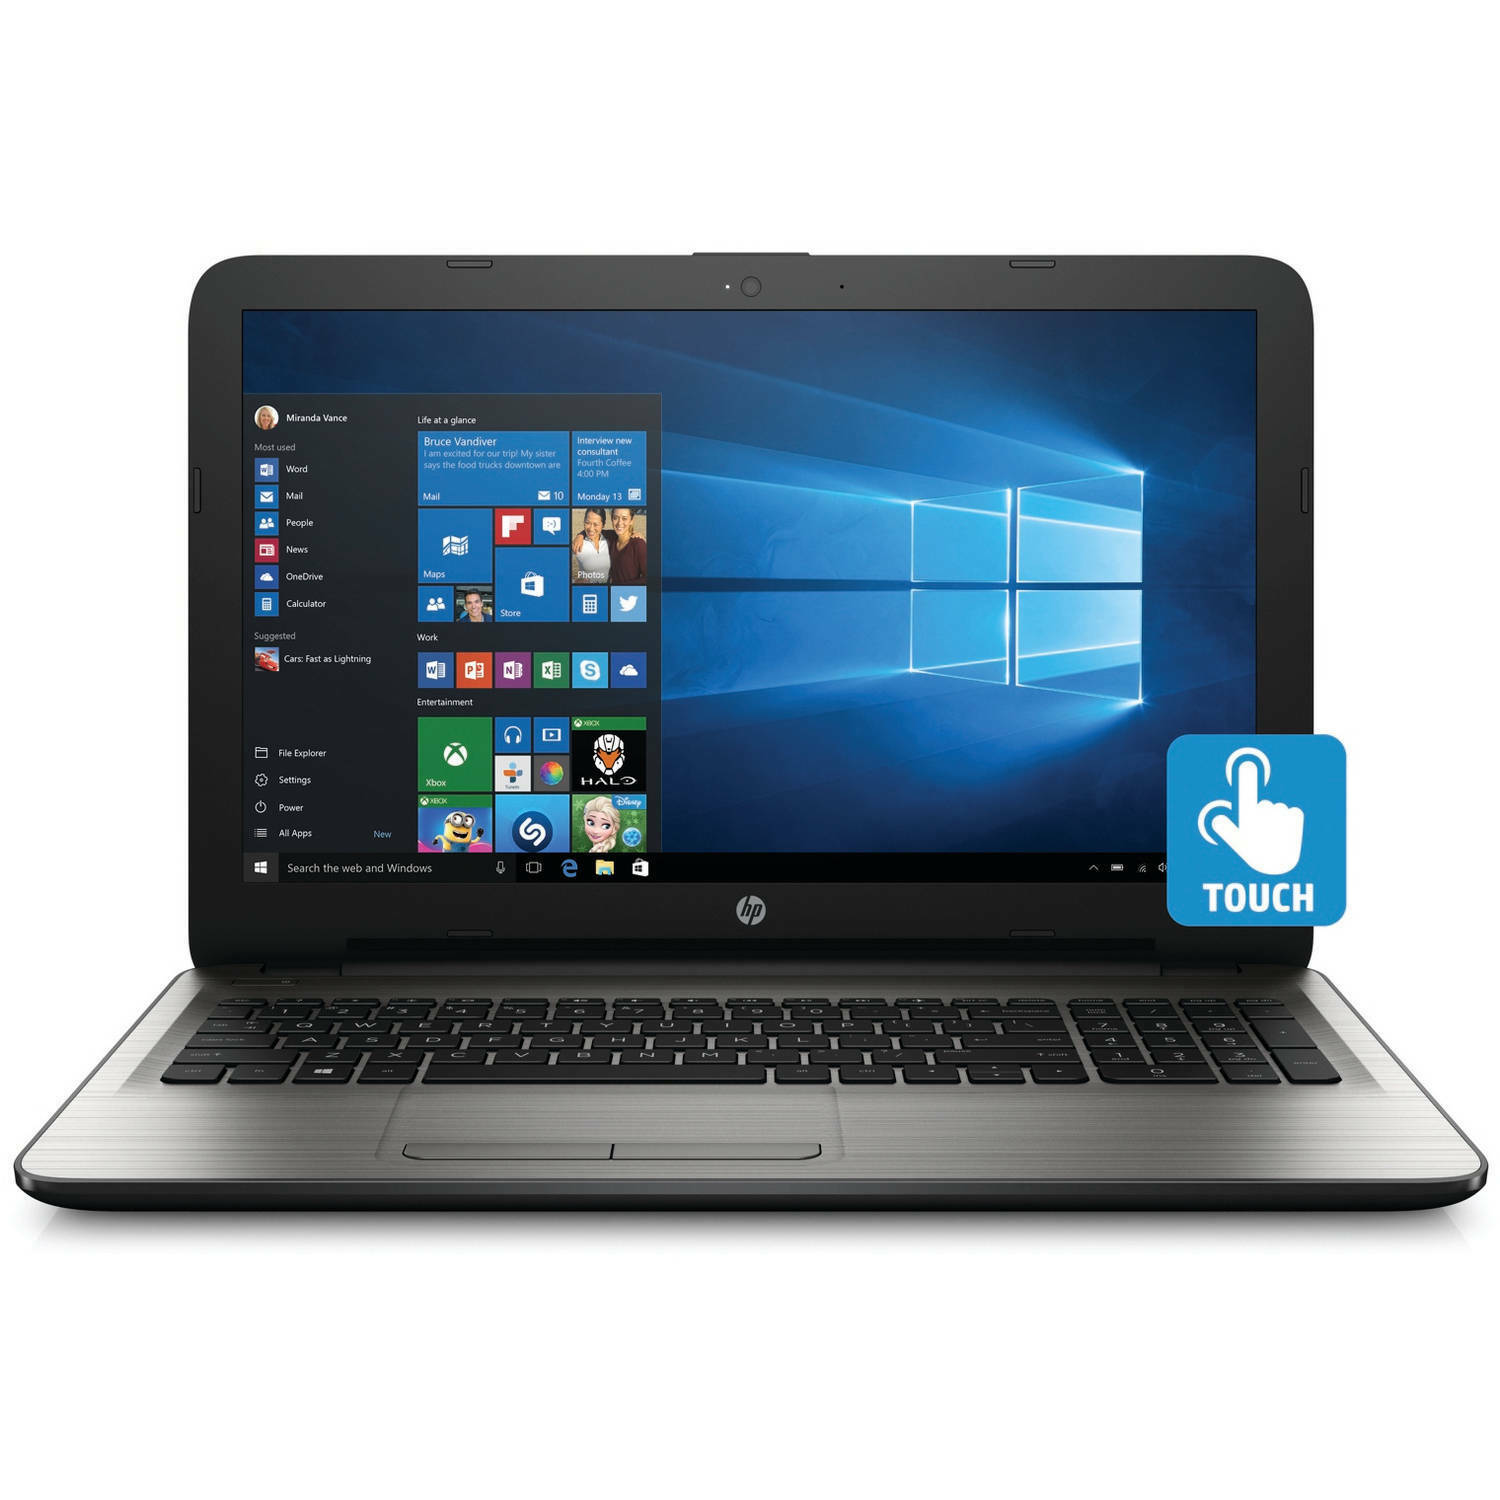 HP Pavillion laptops